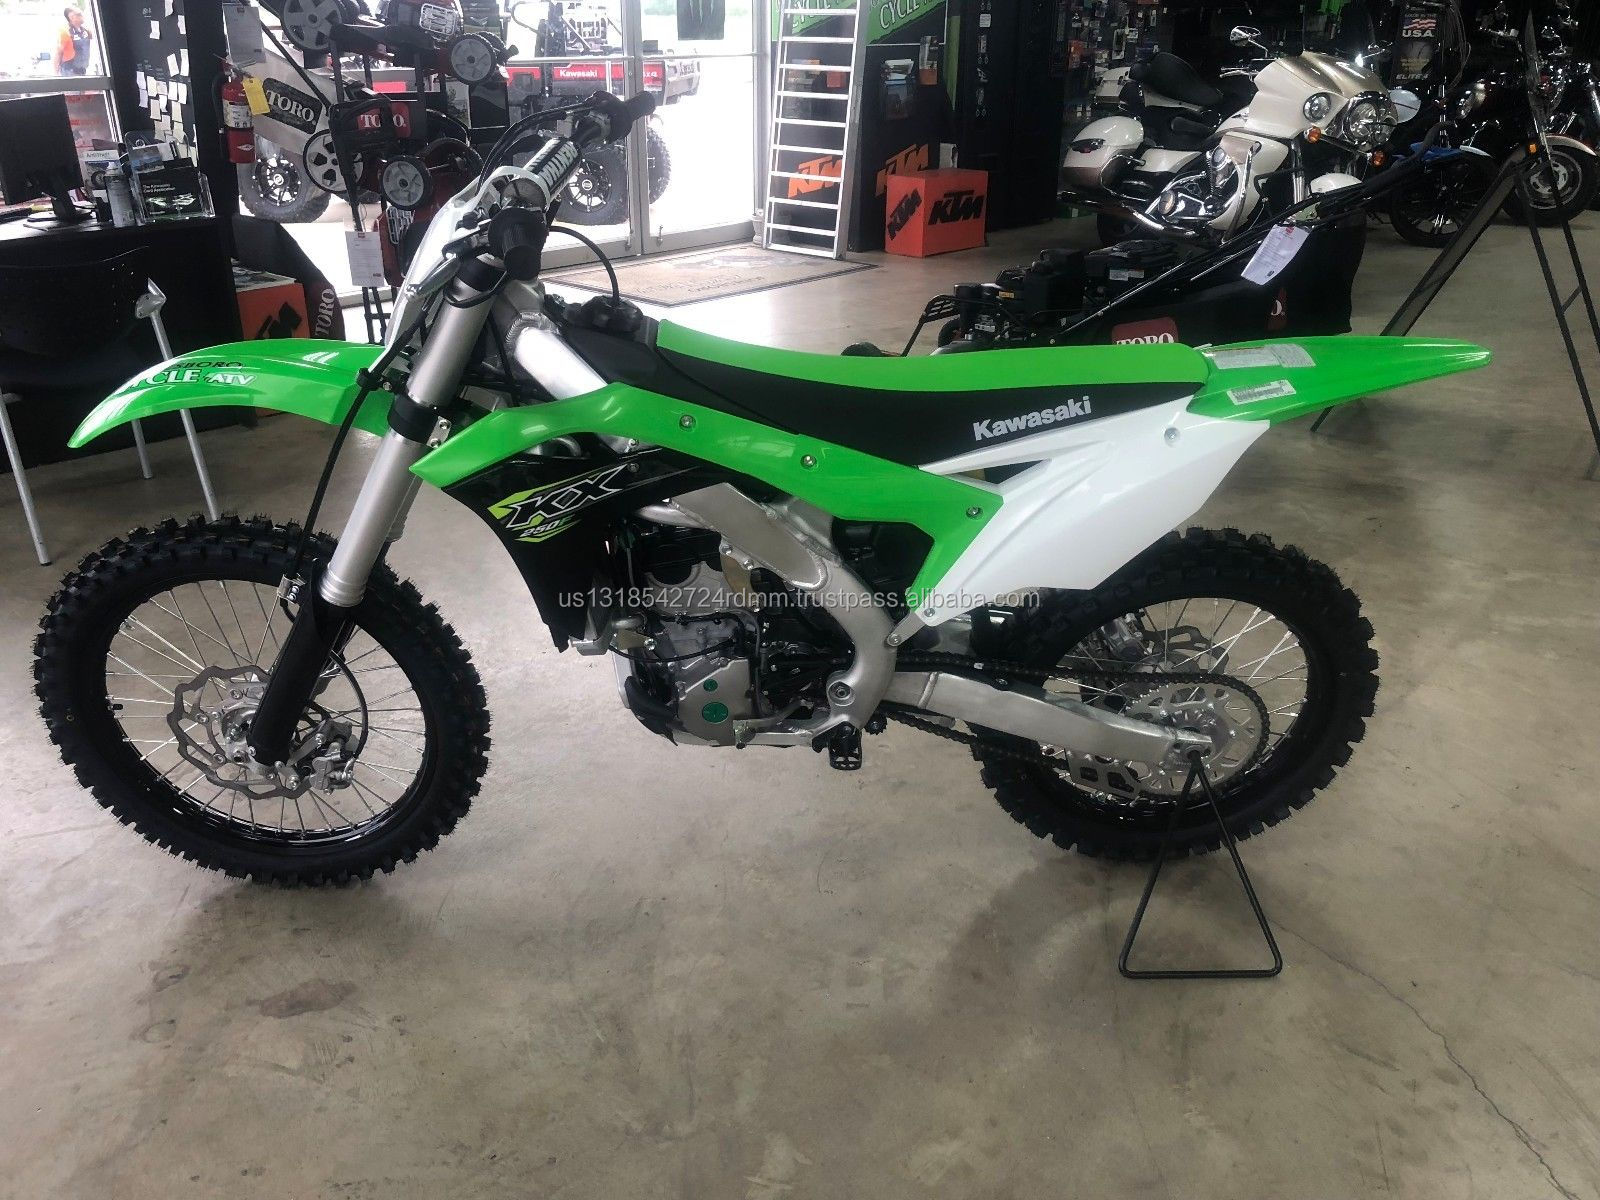 Factory Sealed 100% Authentic 2018 KAWASAKI KX250F KX252 KX KX250 250 Off-Road Dirtbike